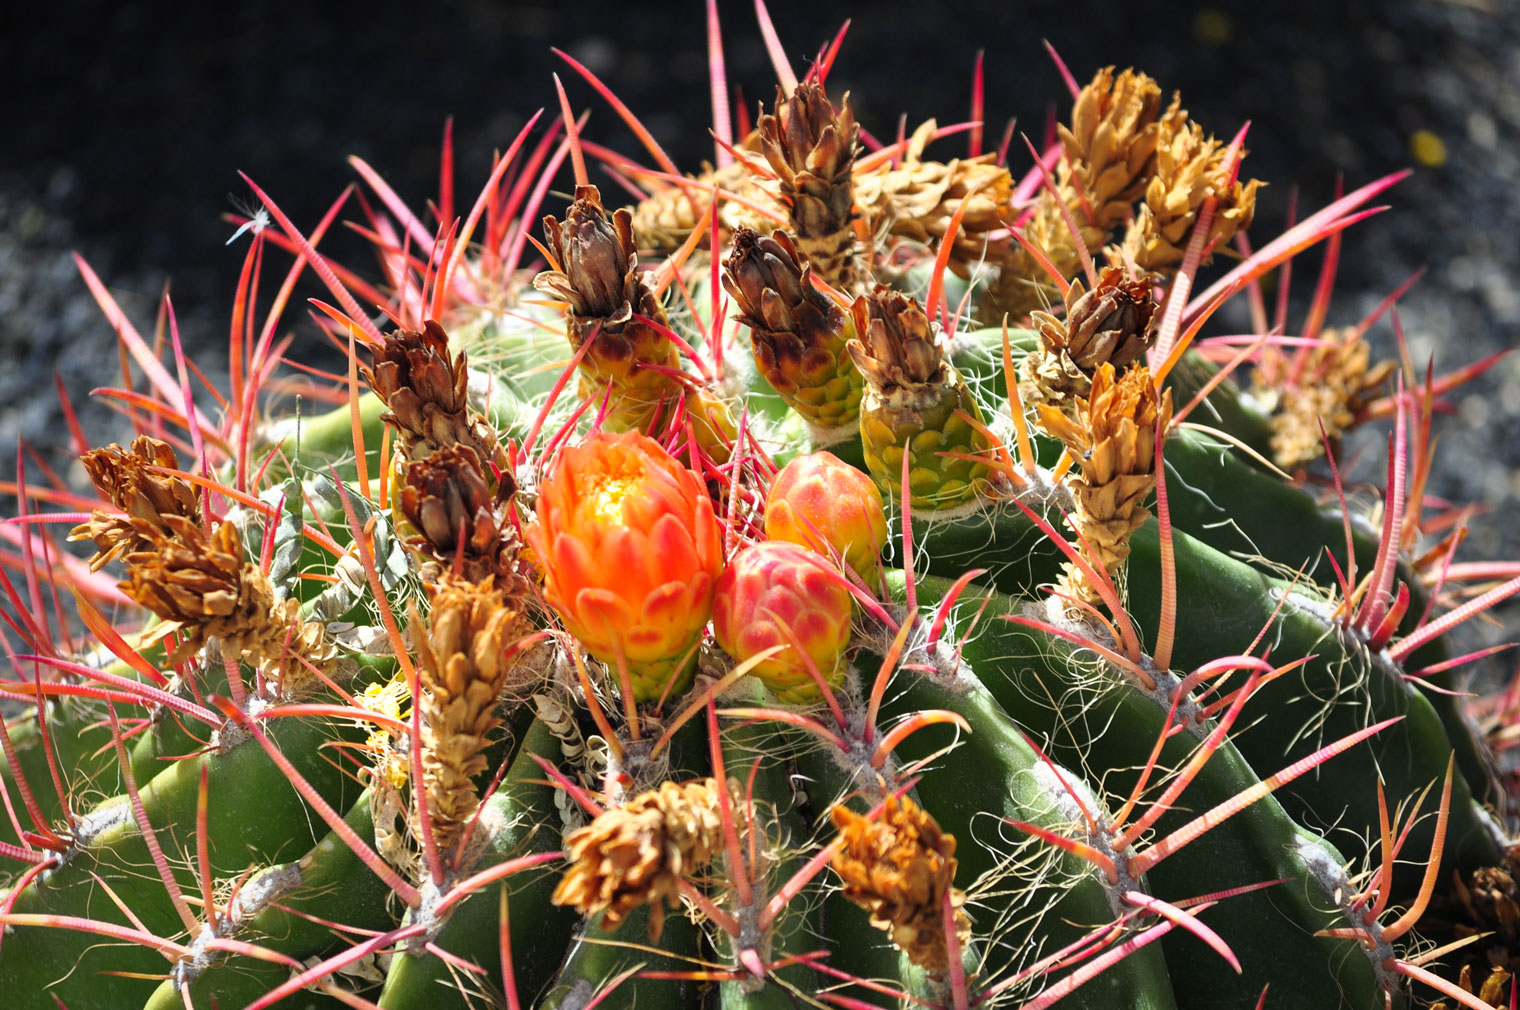 The top of the Fire Barrel cactus with red spines and three emerging pink-orange-yellow flower buds on top.